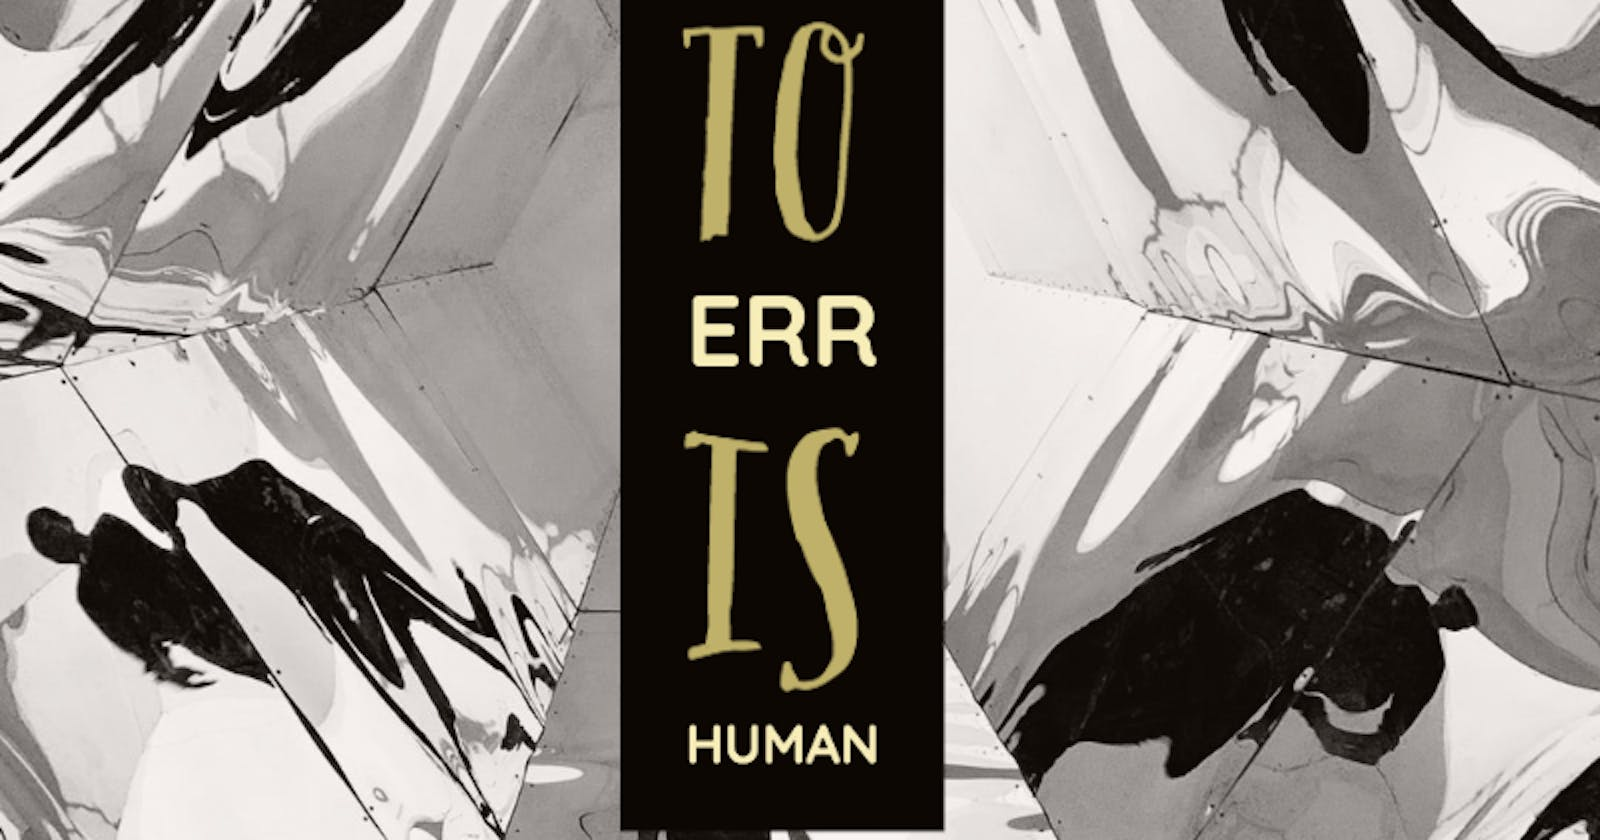 To err is human!